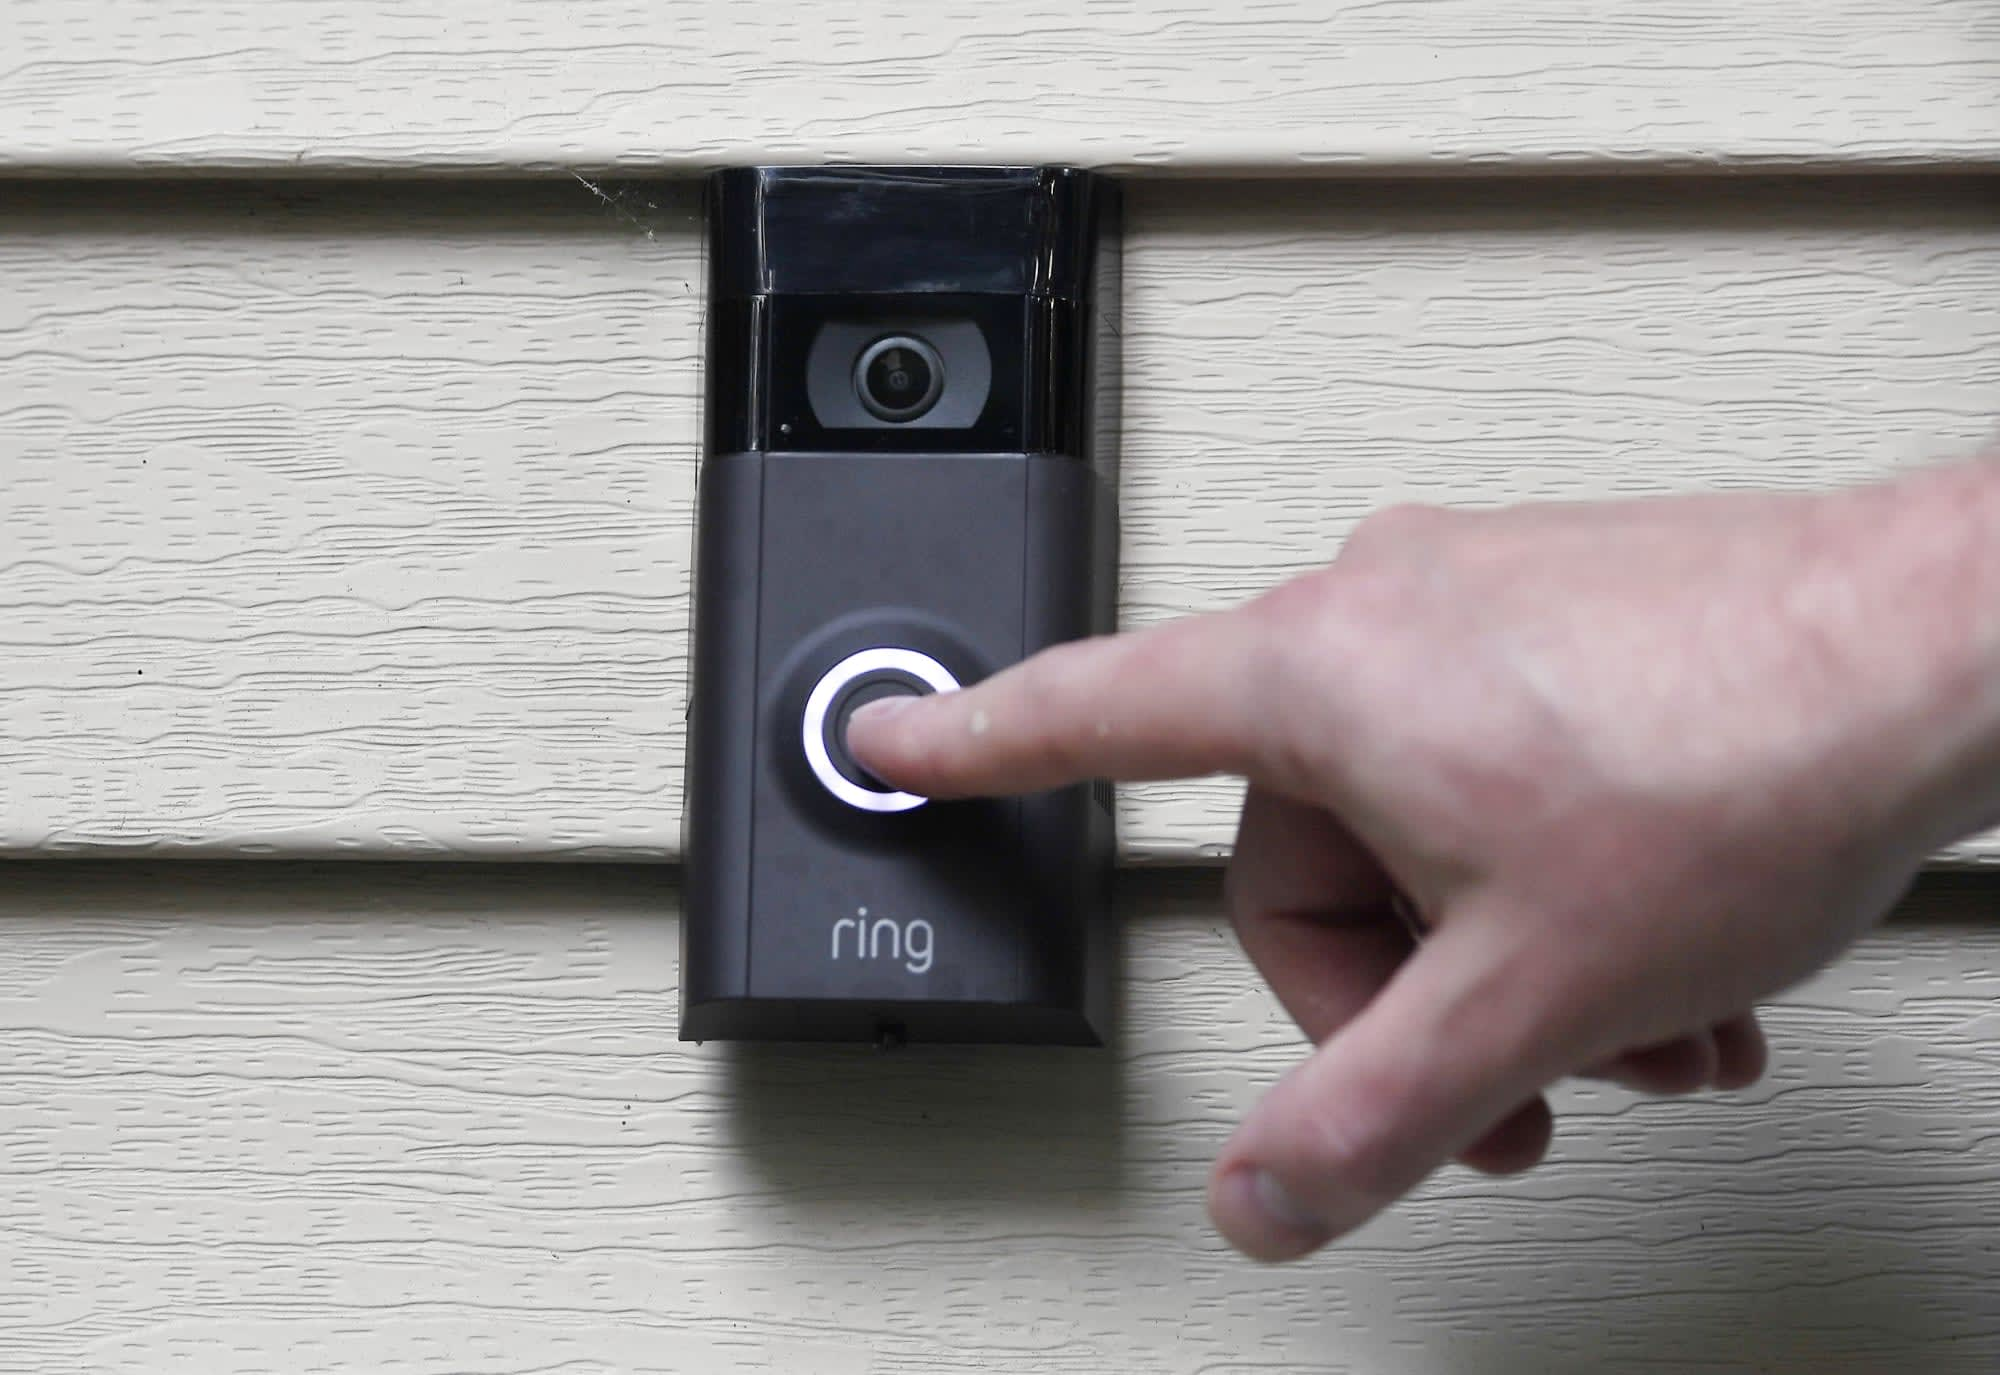 Amazon is reportedly teaching police how to get Ring footage